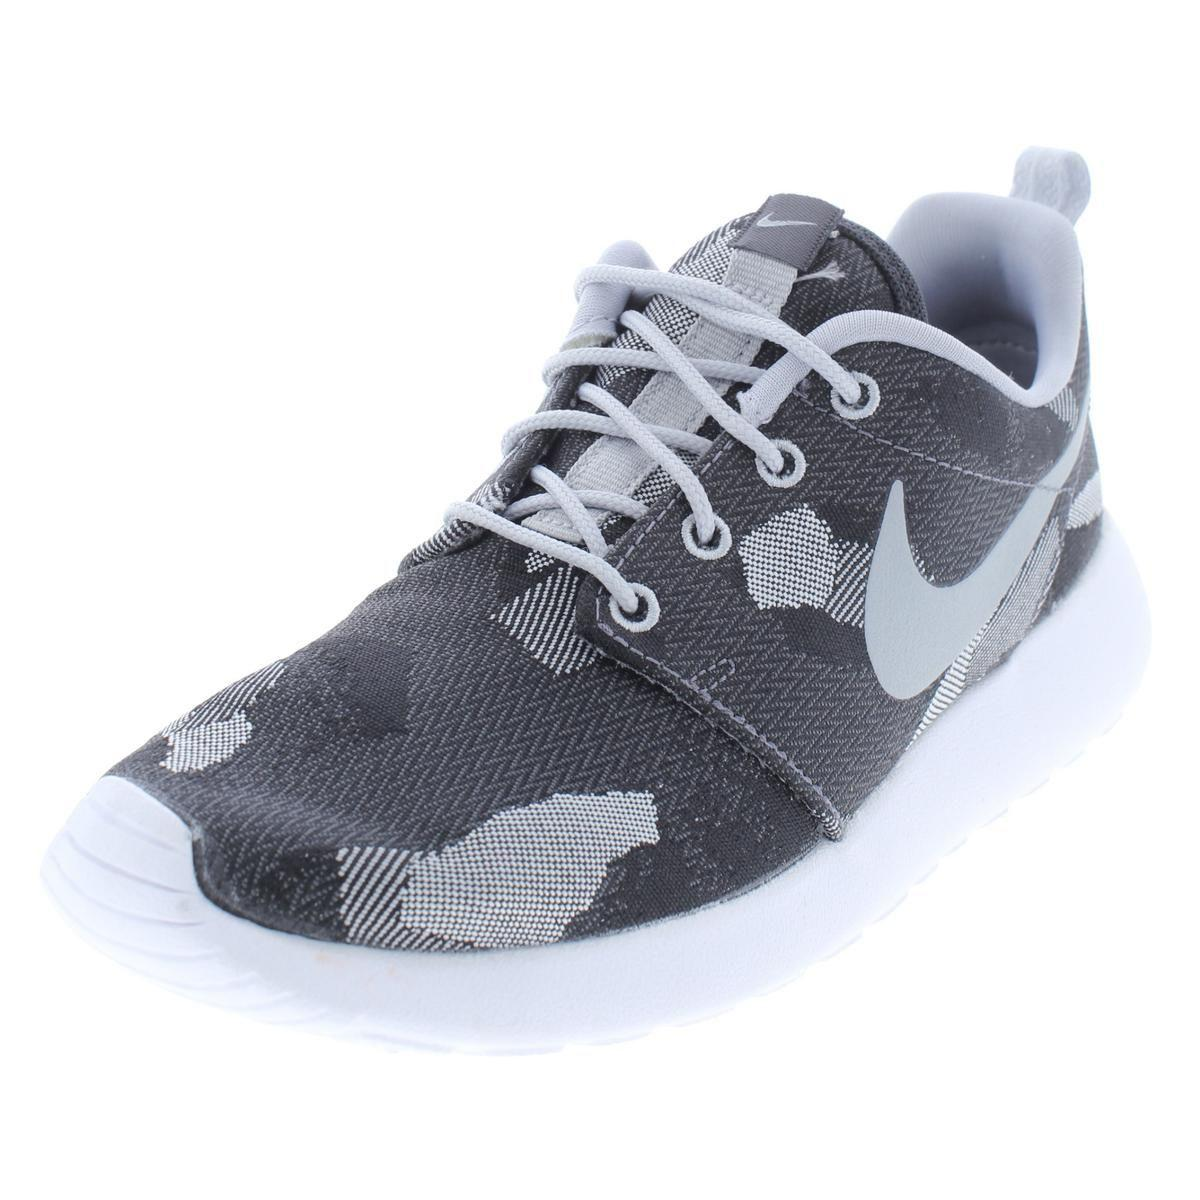 c445a2b17896 Lyst - Nike Womens Roshe One Low Top Sneakers Running Shoes in Gray